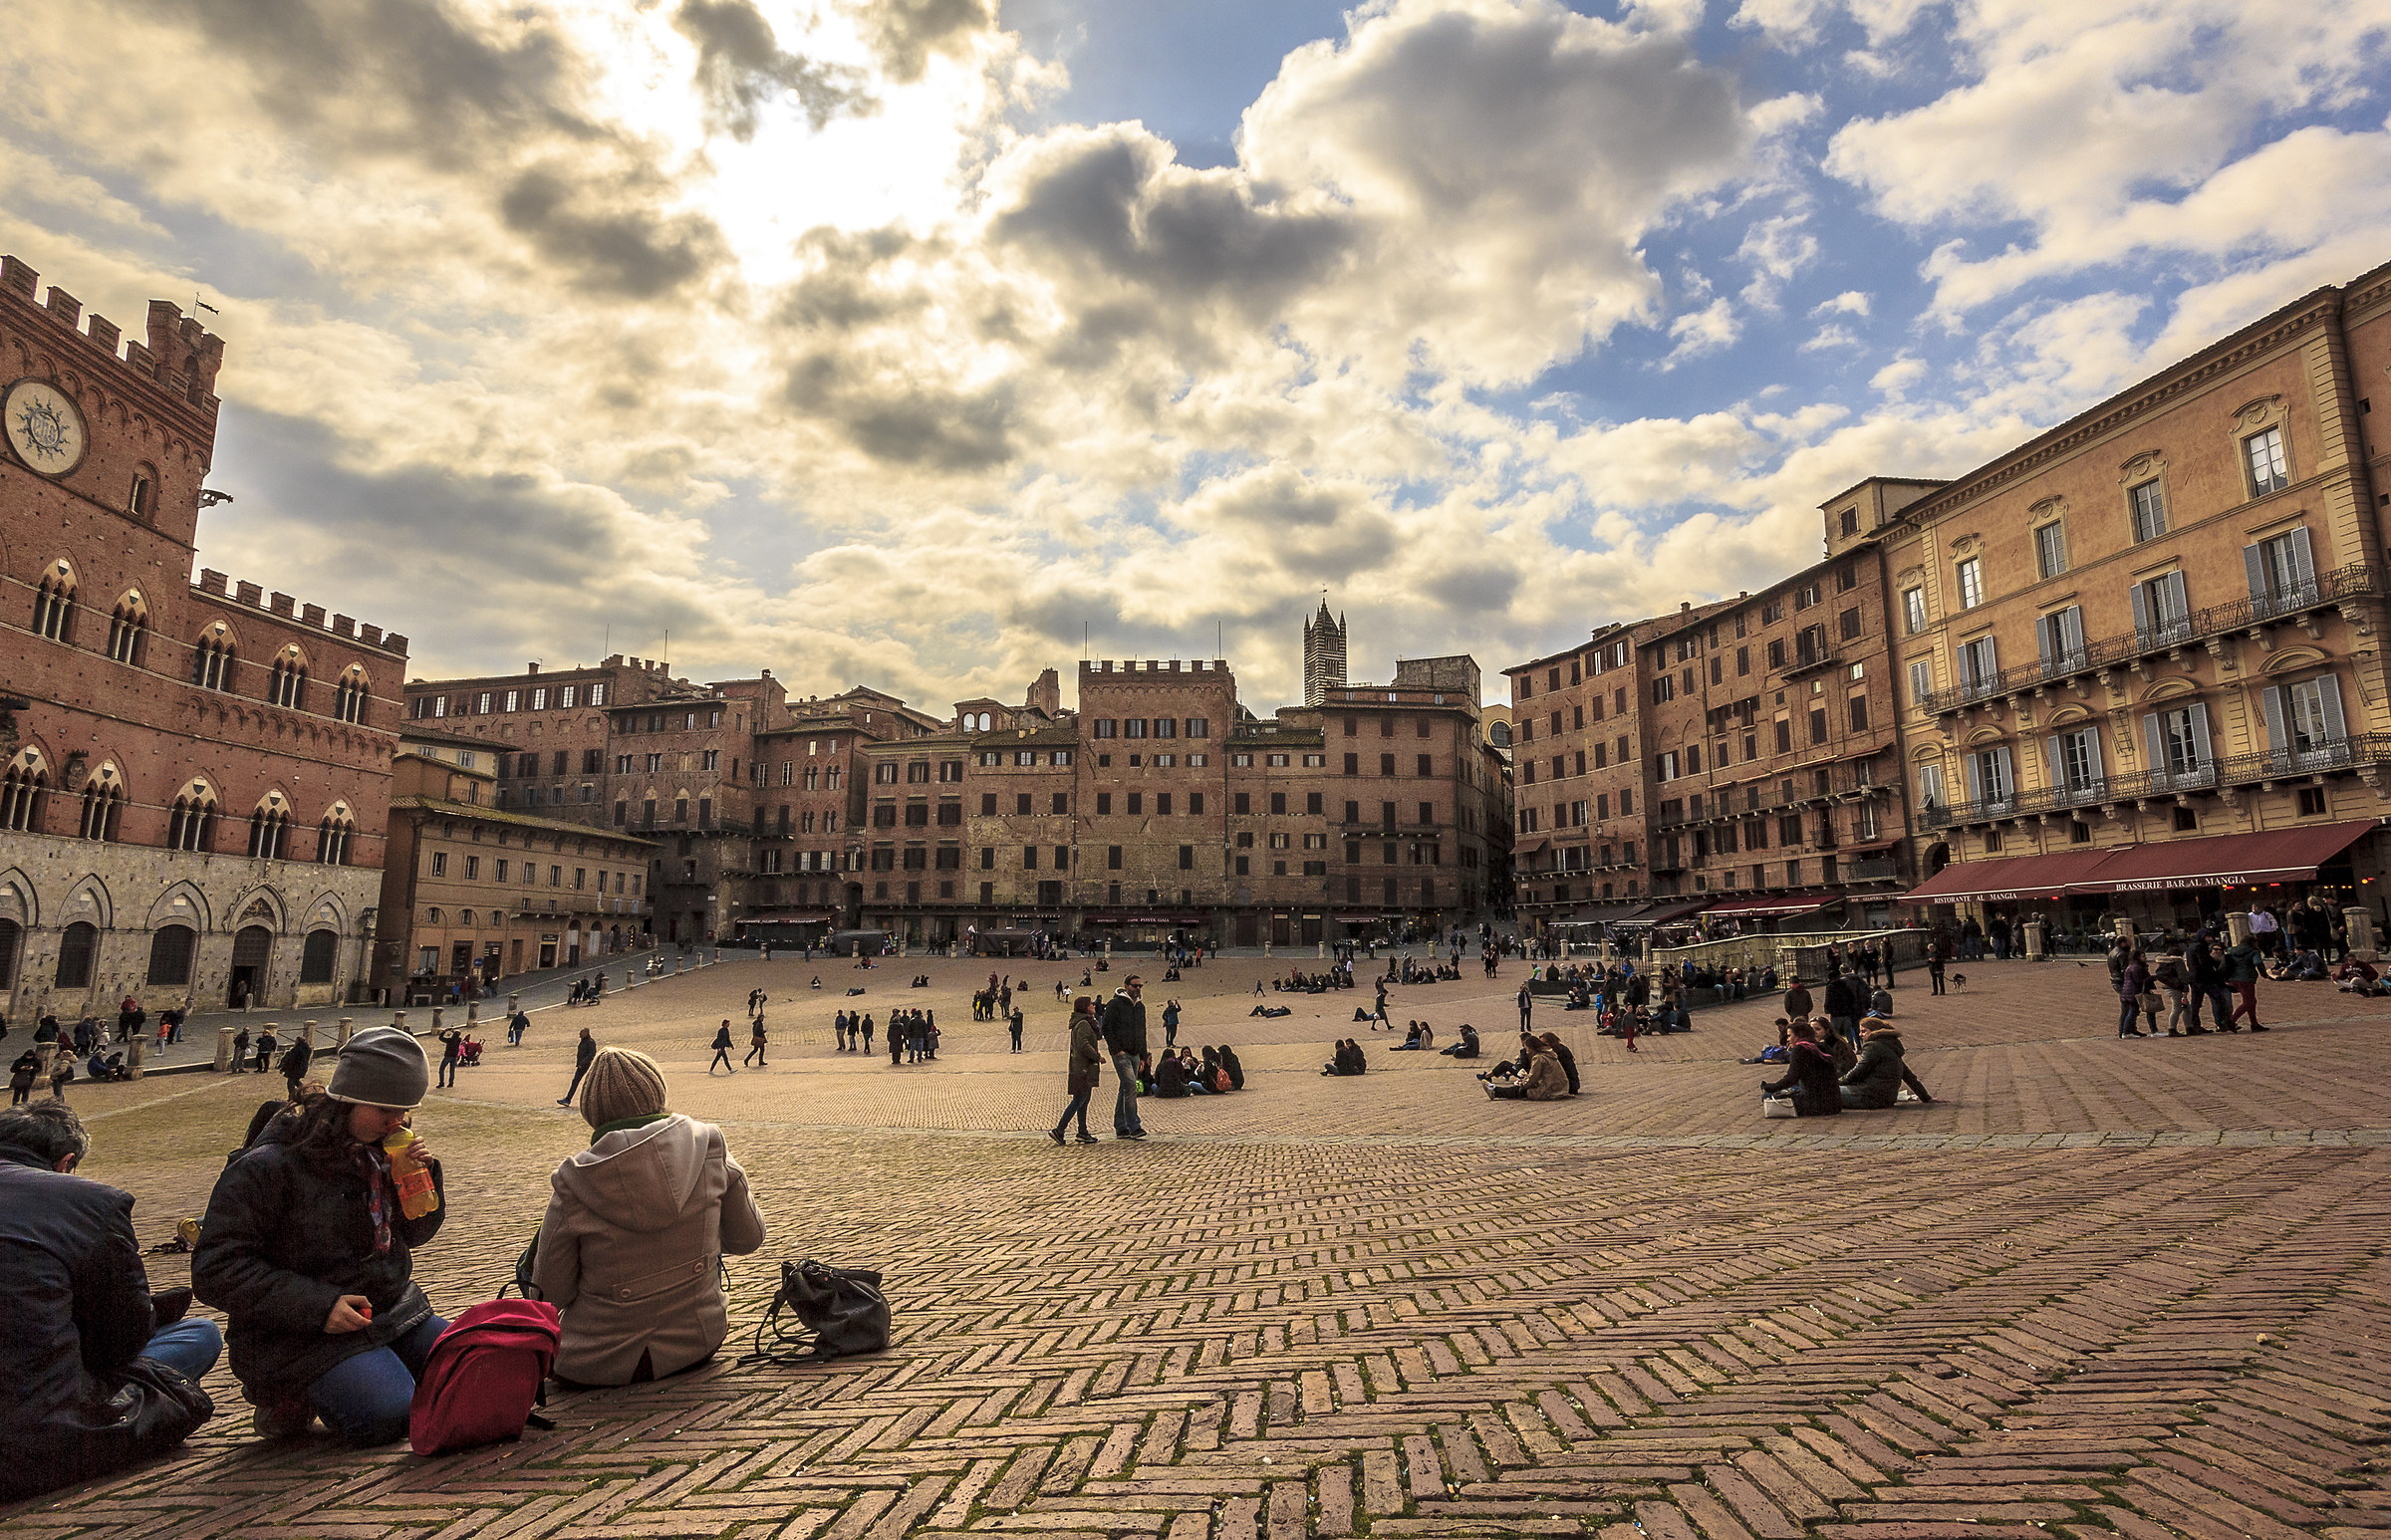 Storie di vita quotidiana in piazza del Campo...